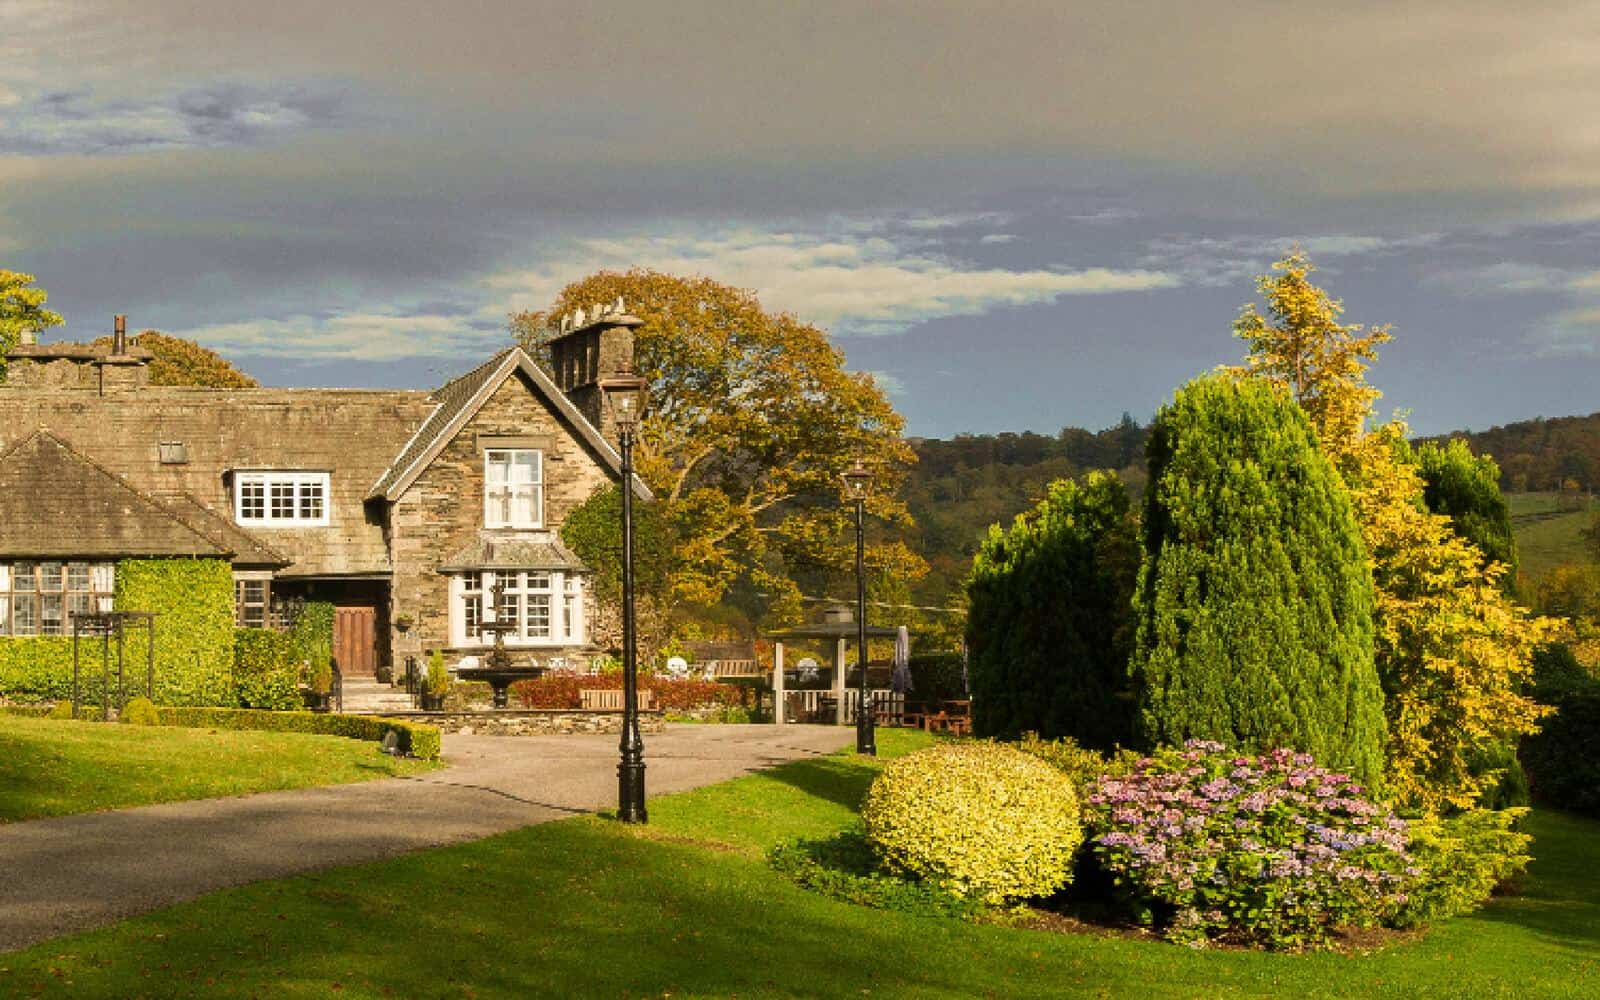 Broadoaks Country House in Windermere exteriror